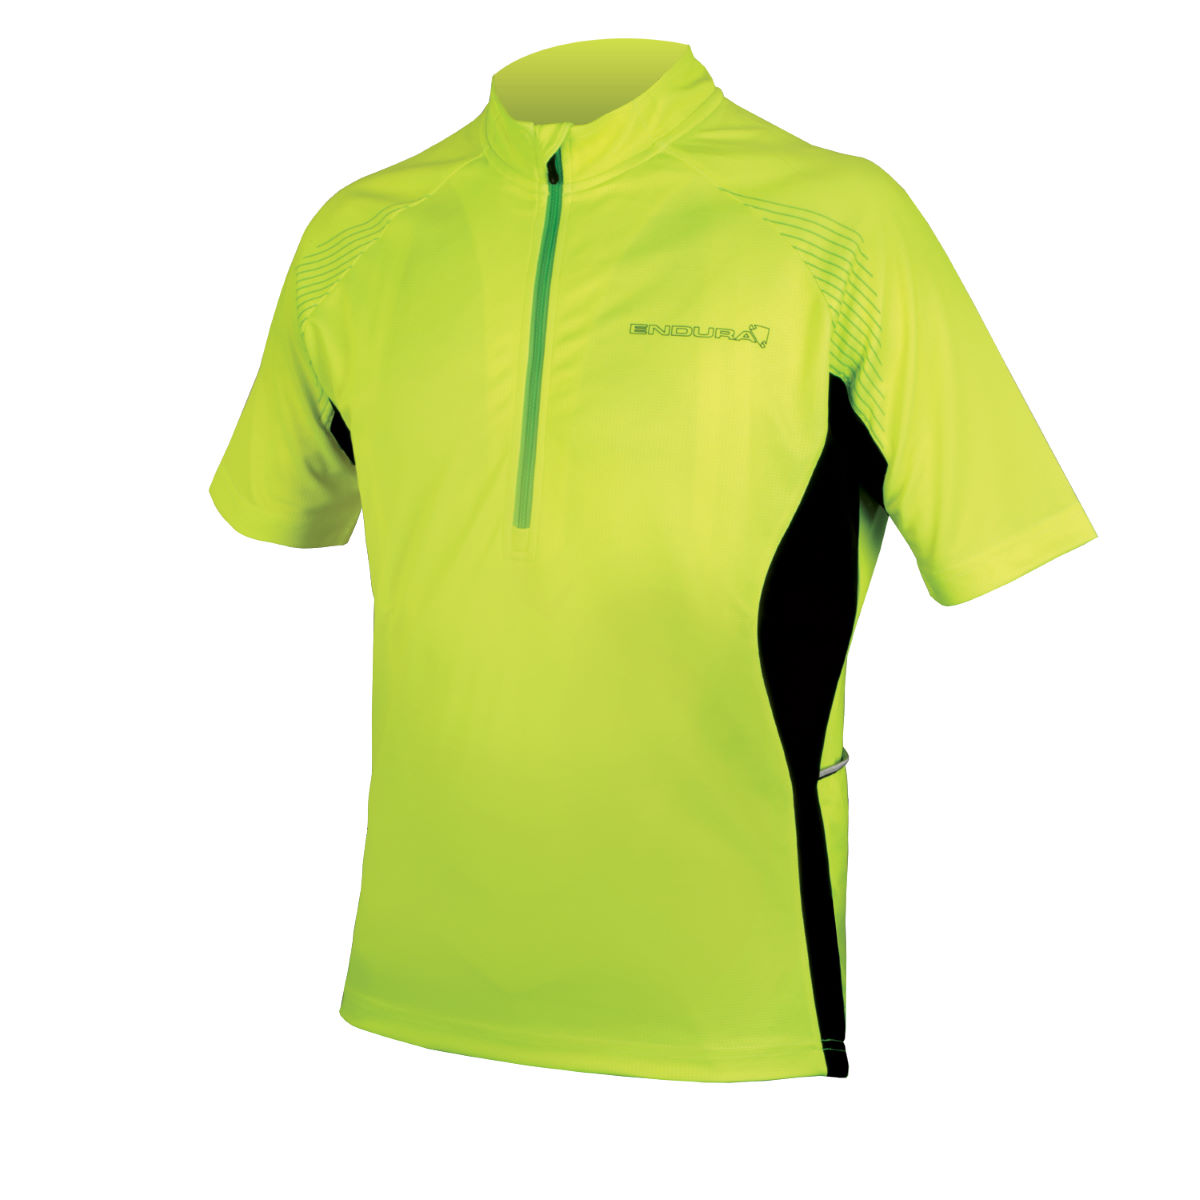 Maillot Endura Xtract II - S Jaune Maillots vélo à manches courtes